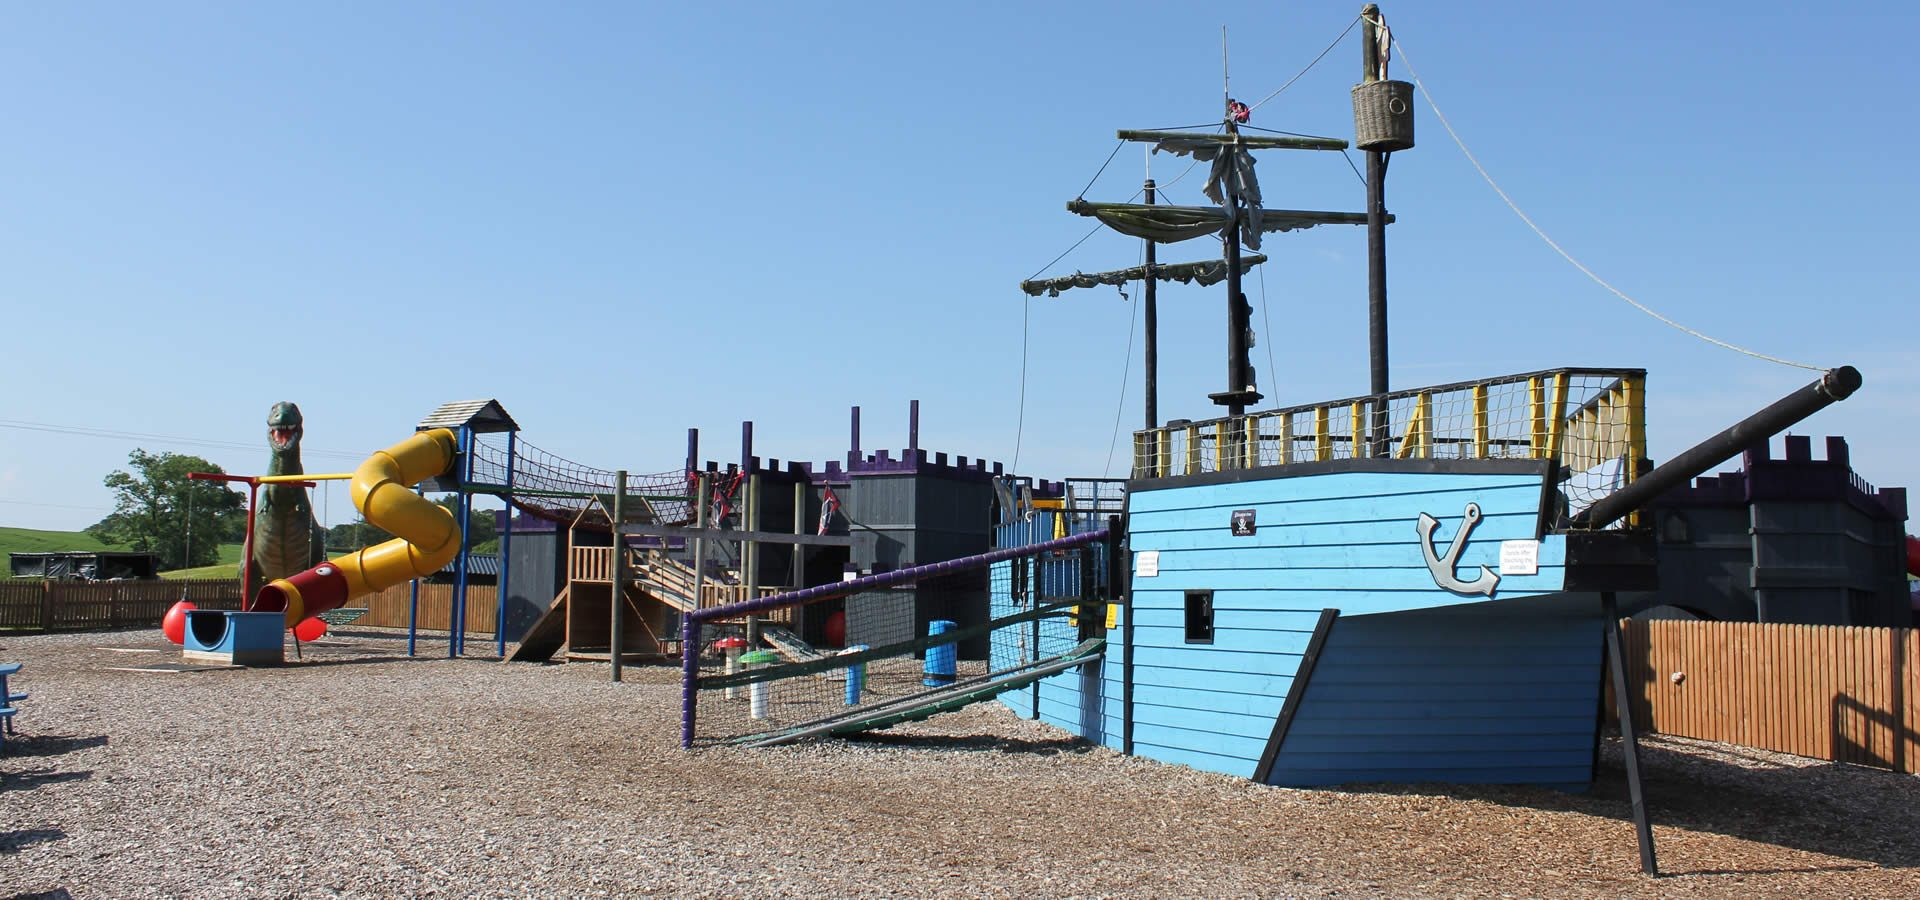 Outdoor play area at Twynholm, Dumfries & Galloway